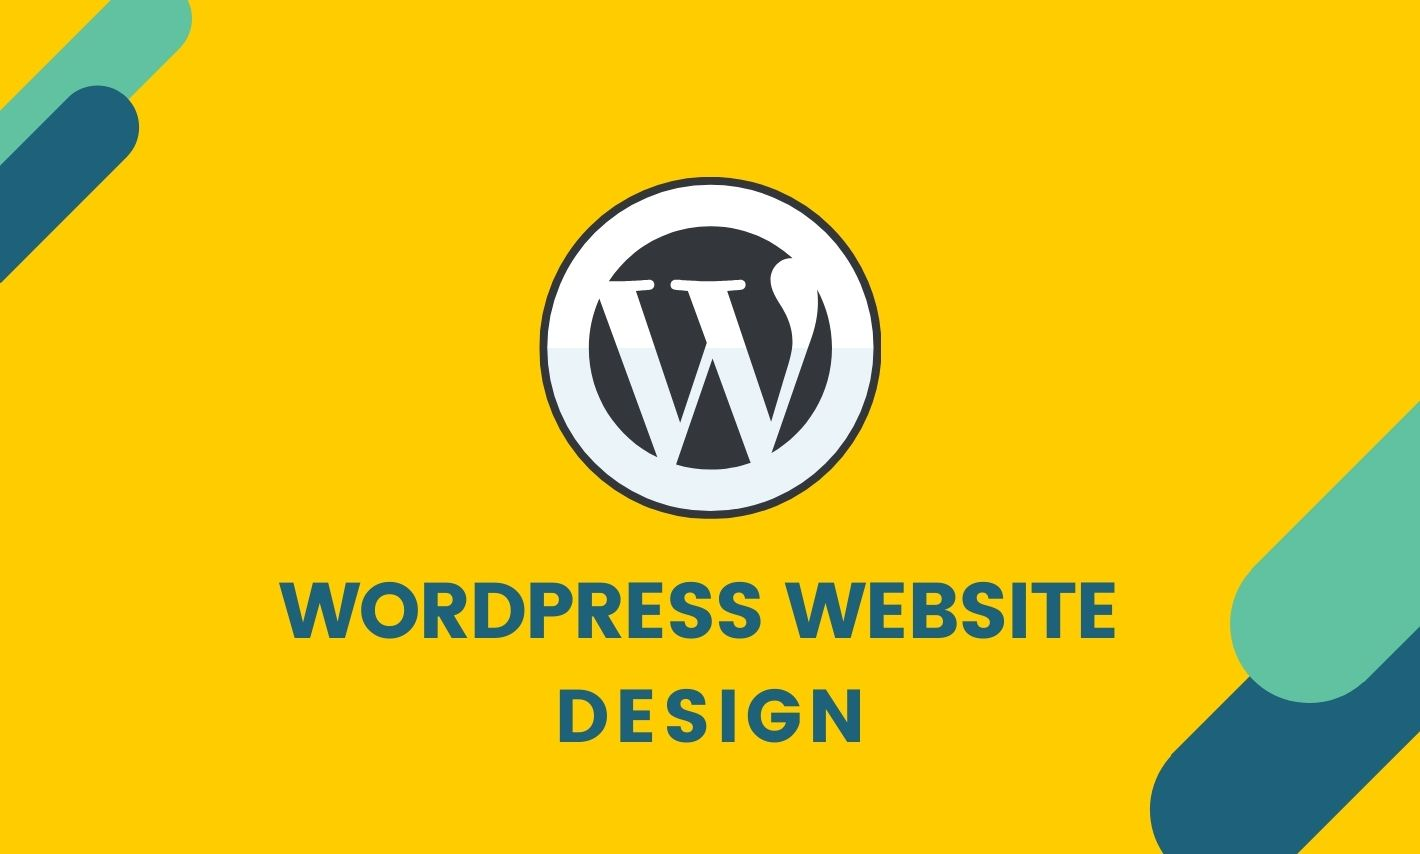 I will build wordpress website design and development